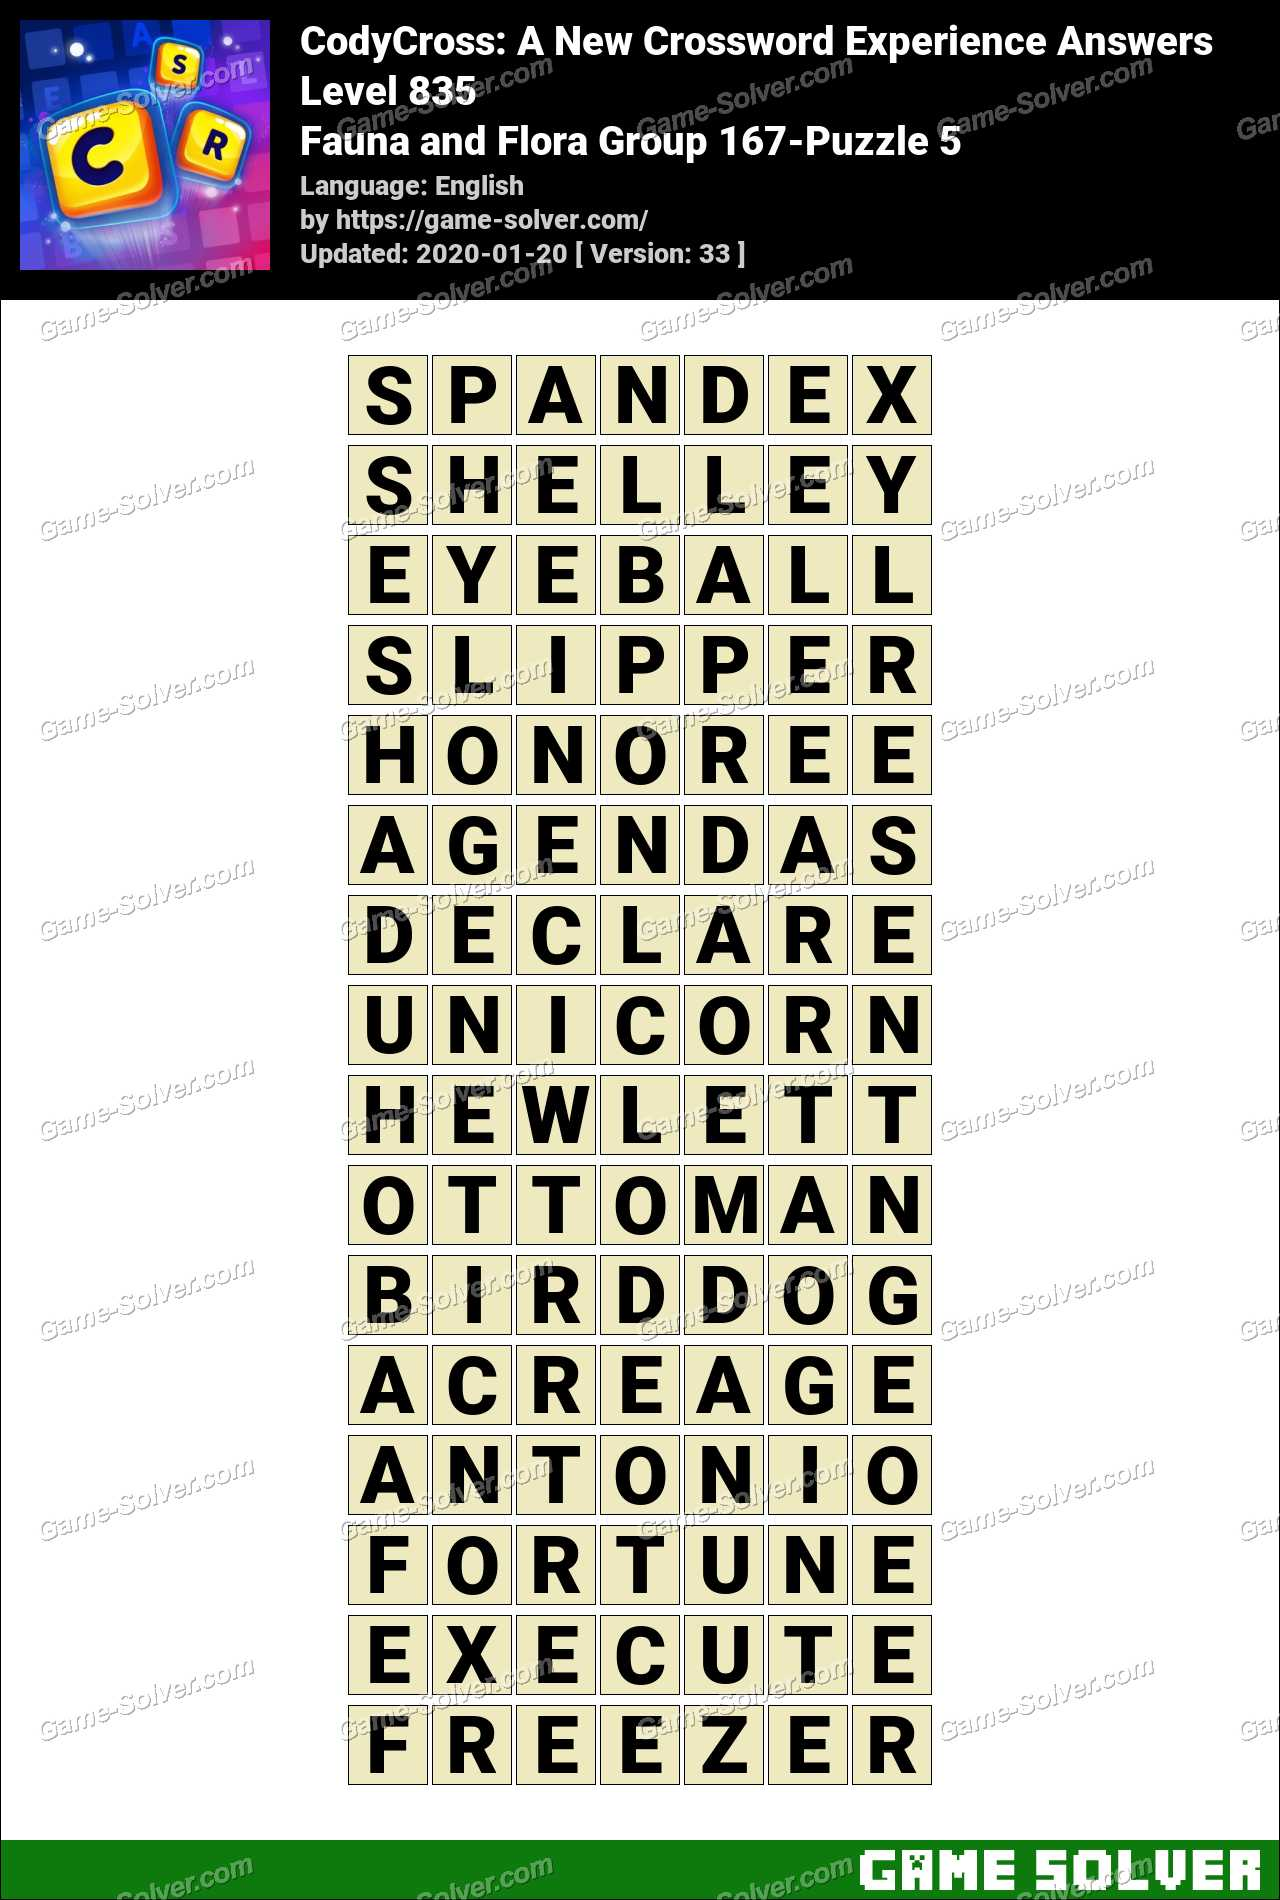 CodyCross Fauna and Flora Group 167-Puzzle 5 Answers